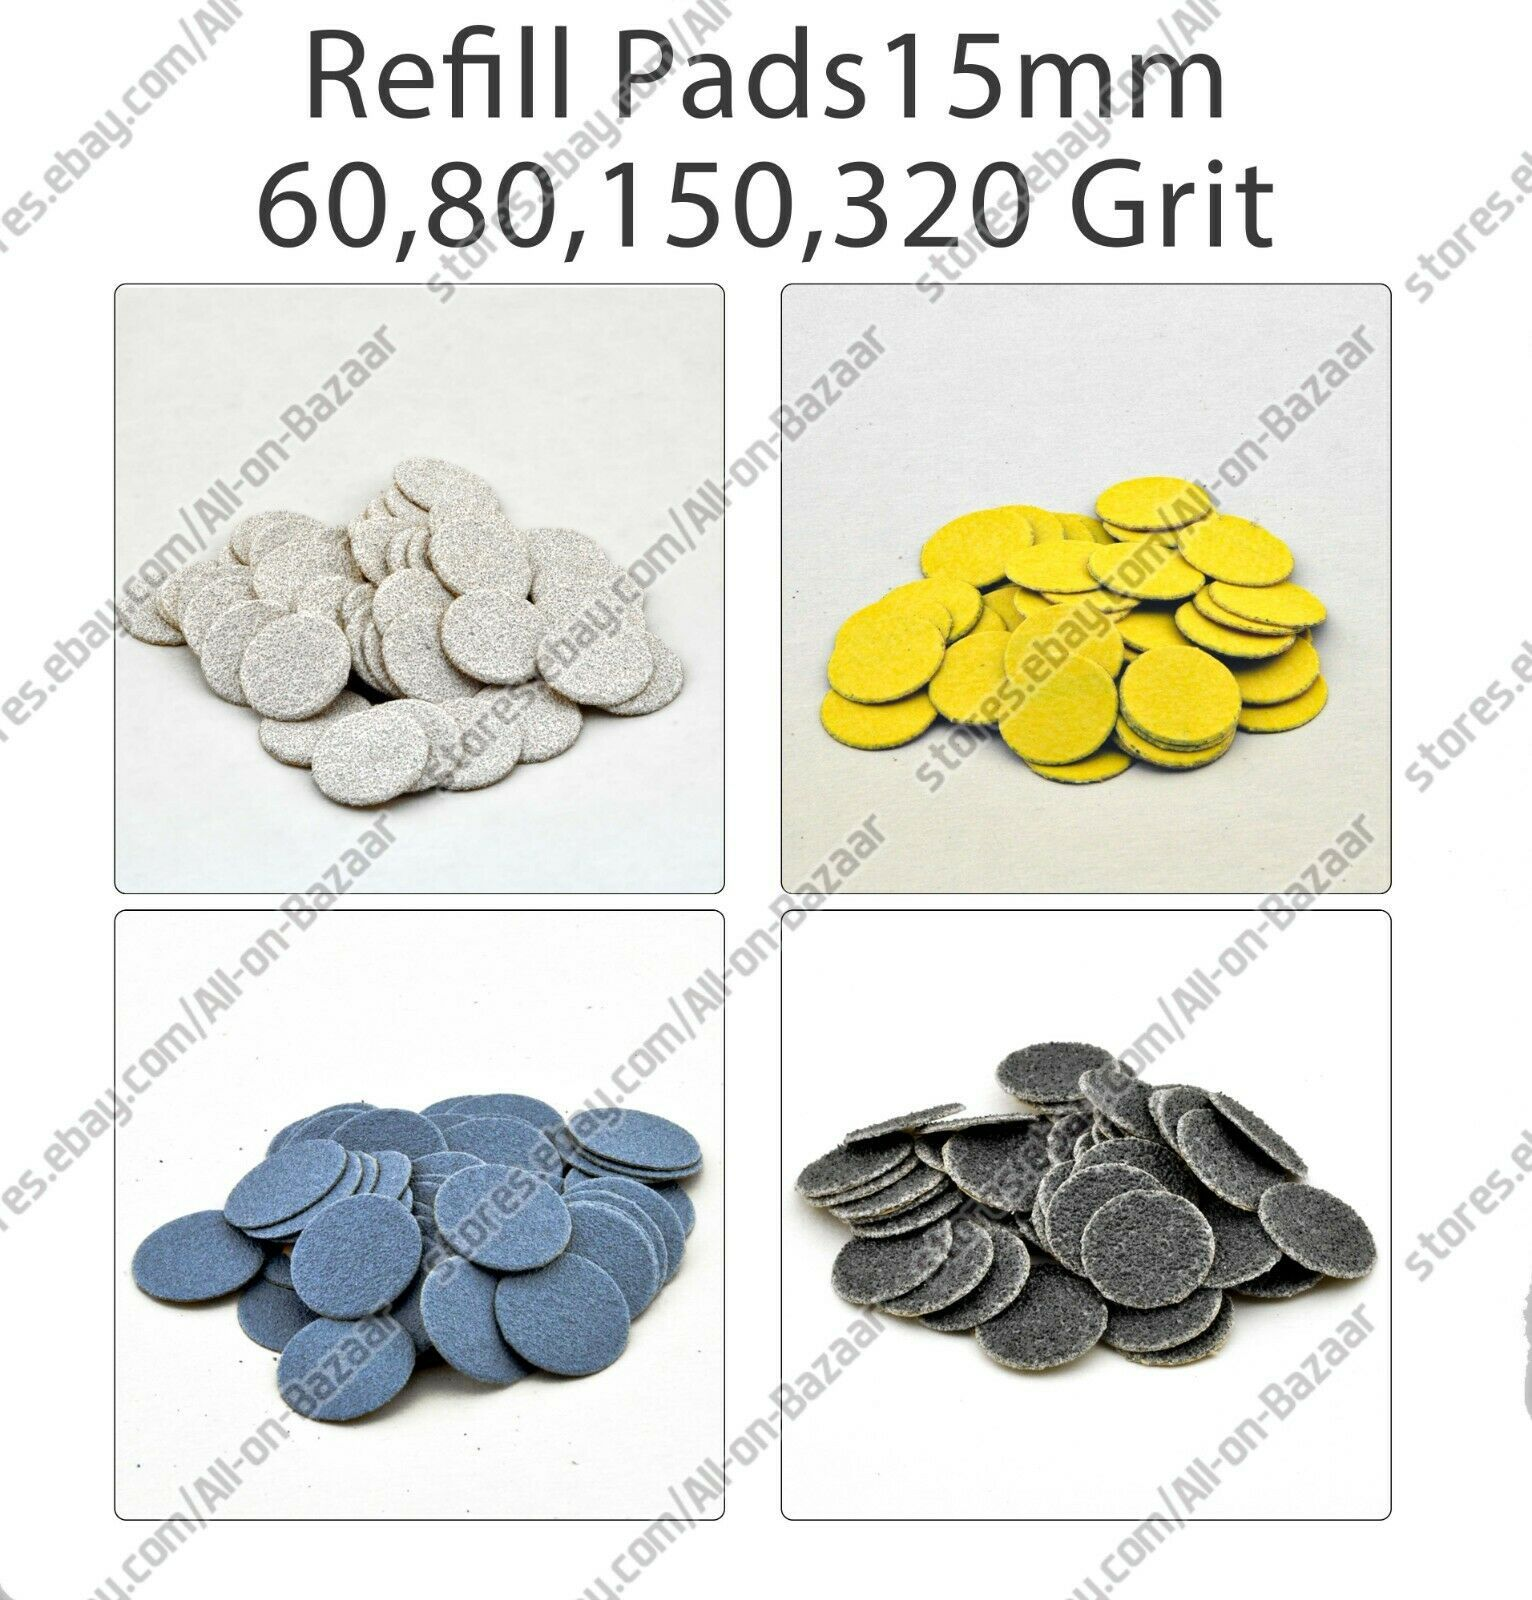 New Refill pads for pedicure 15 mm 60, 80, 150, 320 grit  - $10.89 - $22.76